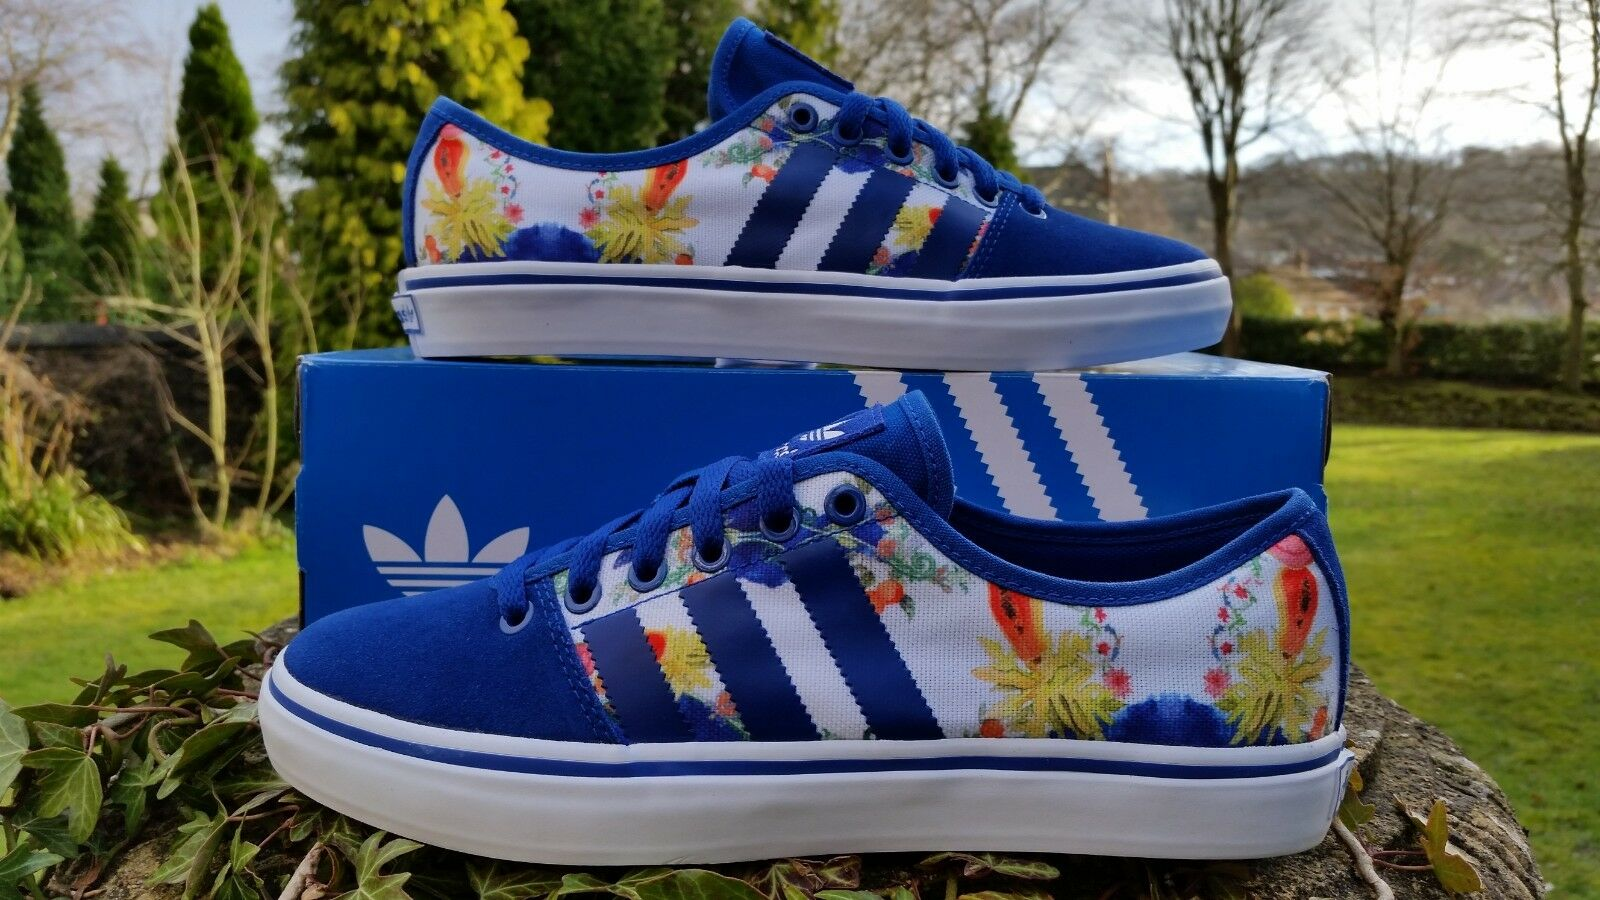 Adidas Originals Womens Adria Low Trainers shoes Sneaker Floral bluee UK 5.5